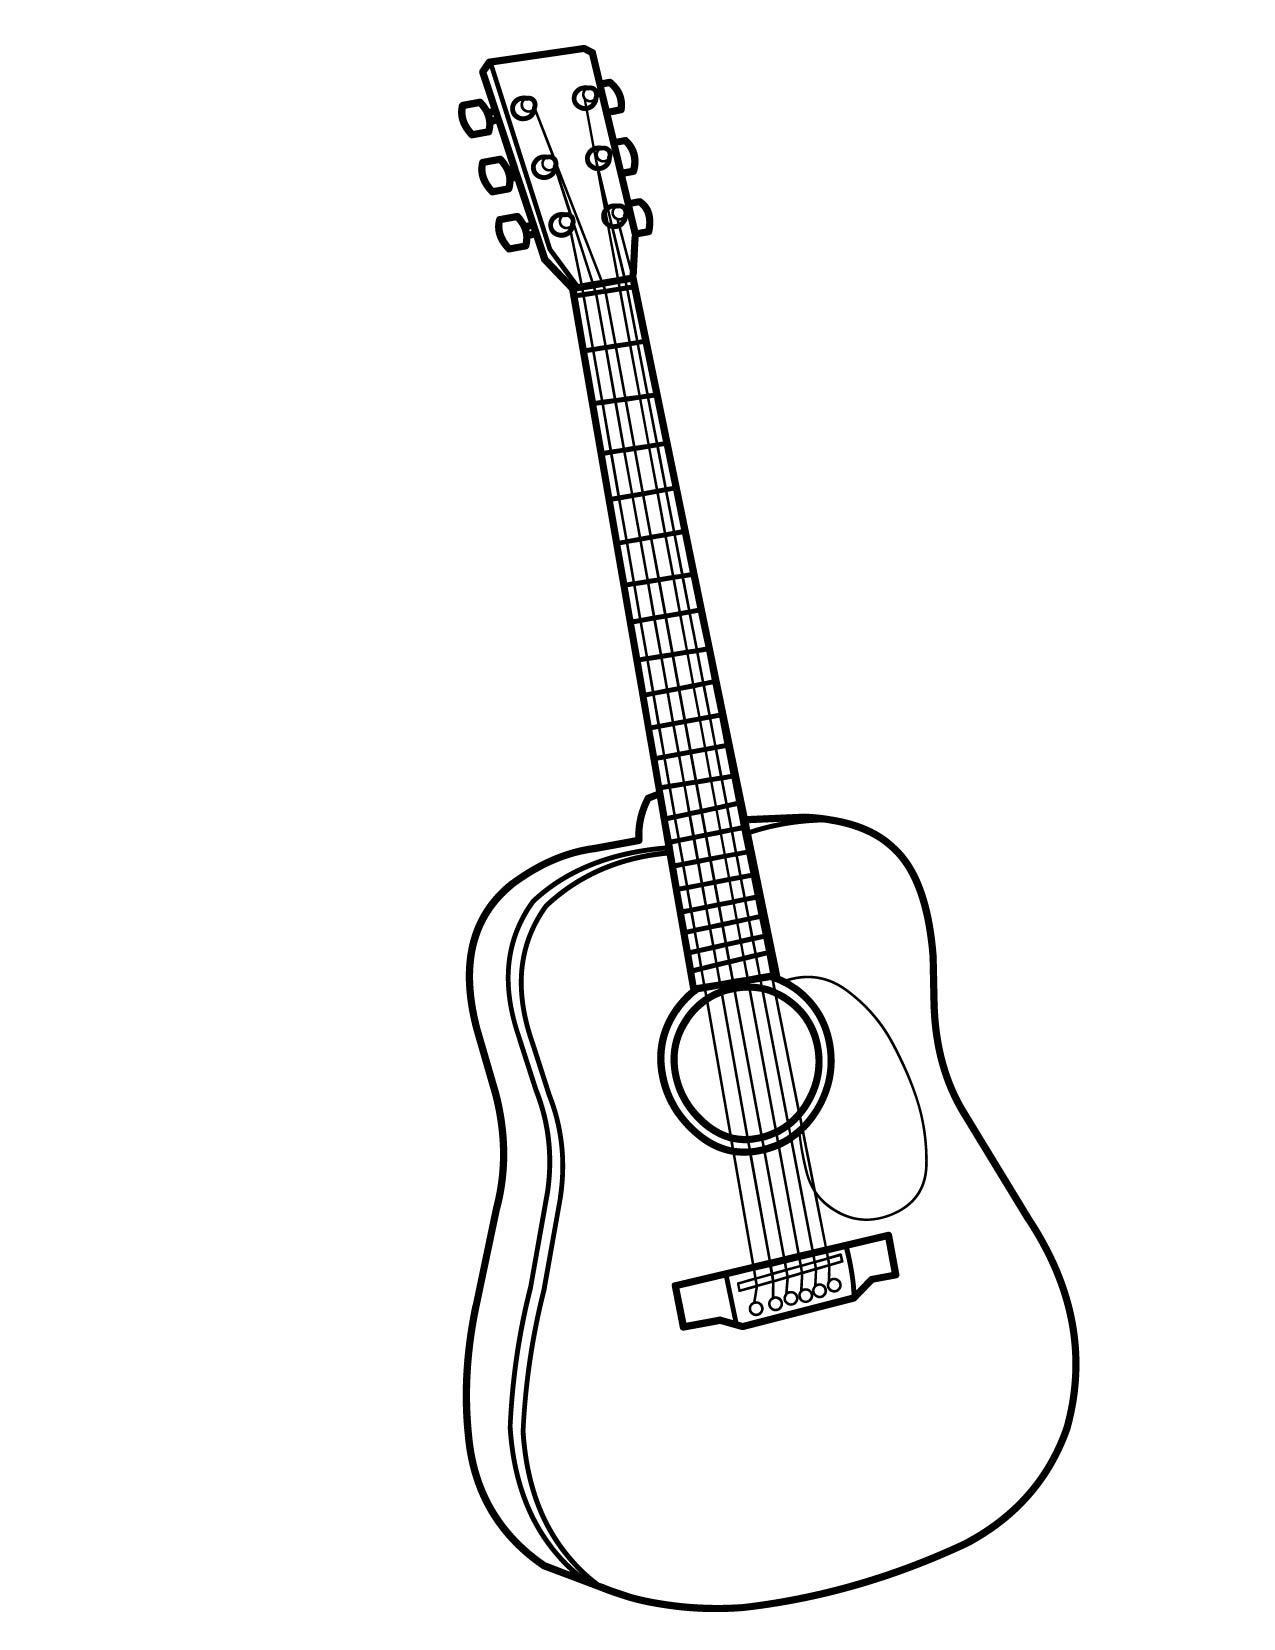 colouring pictures of musical instruments musical instruments coloring pagesmore pins like this one colouring of instruments pictures musical